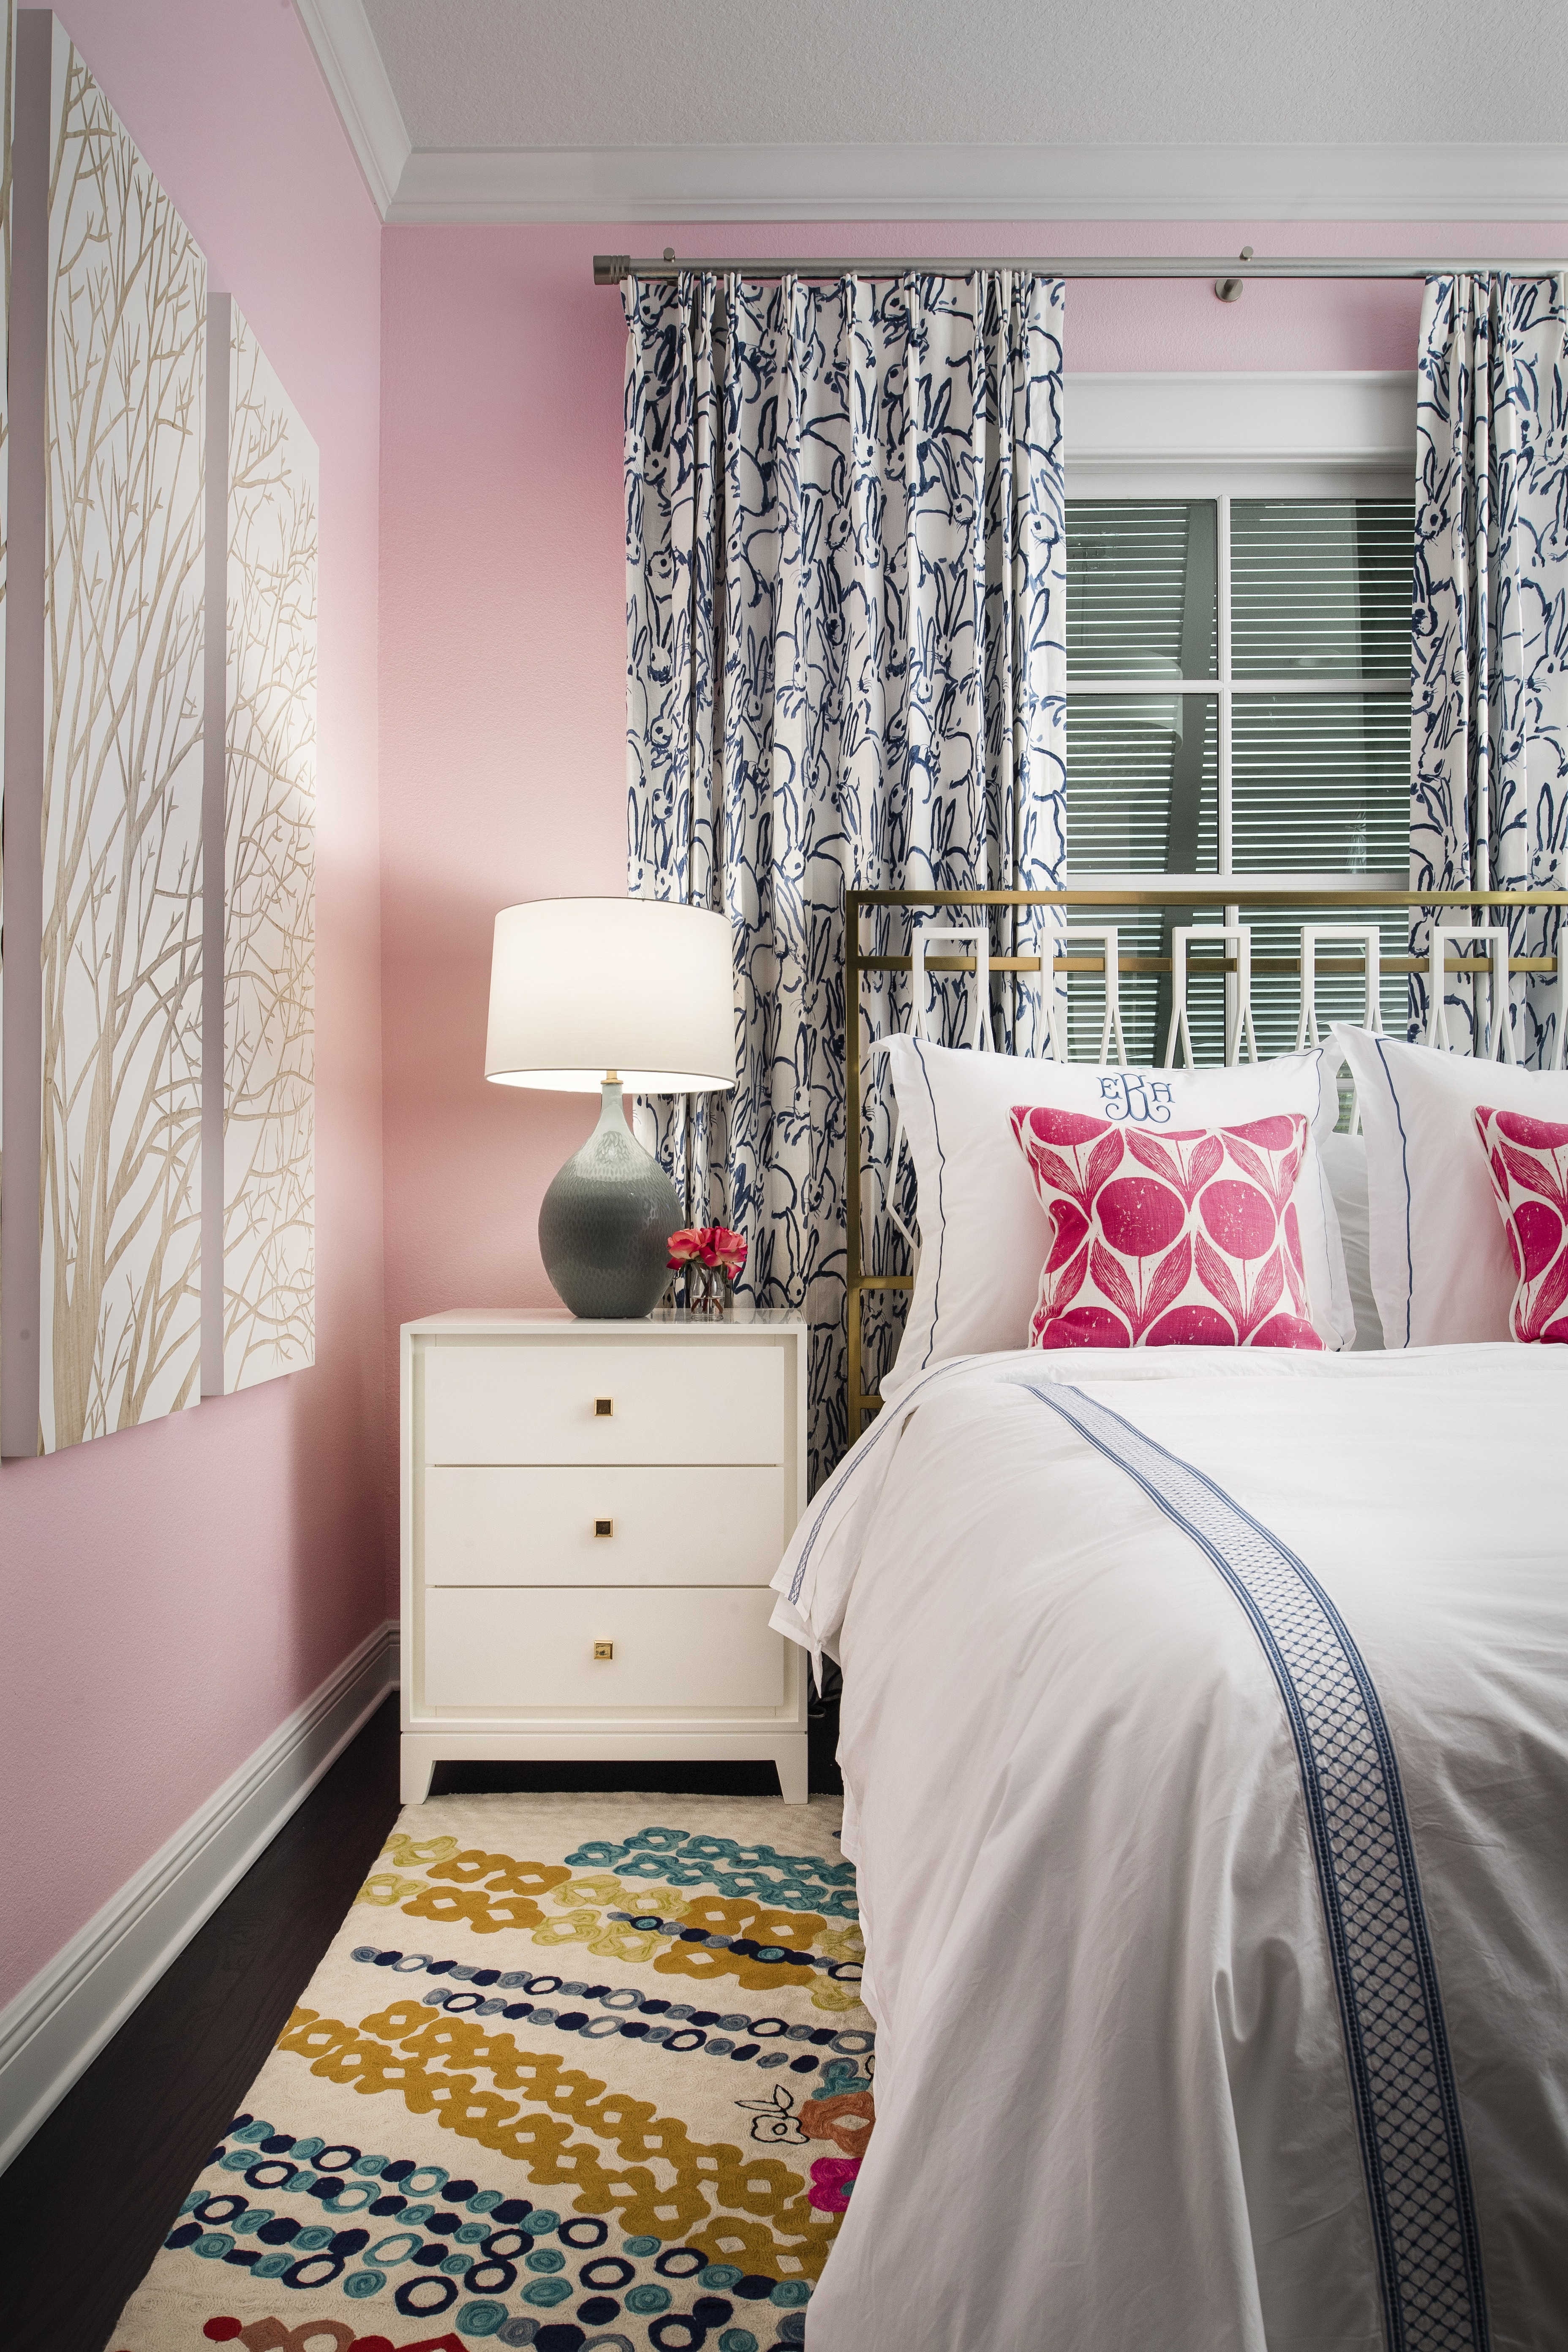 Lake Sybelia kids bedroom by Brianna Michelle Design